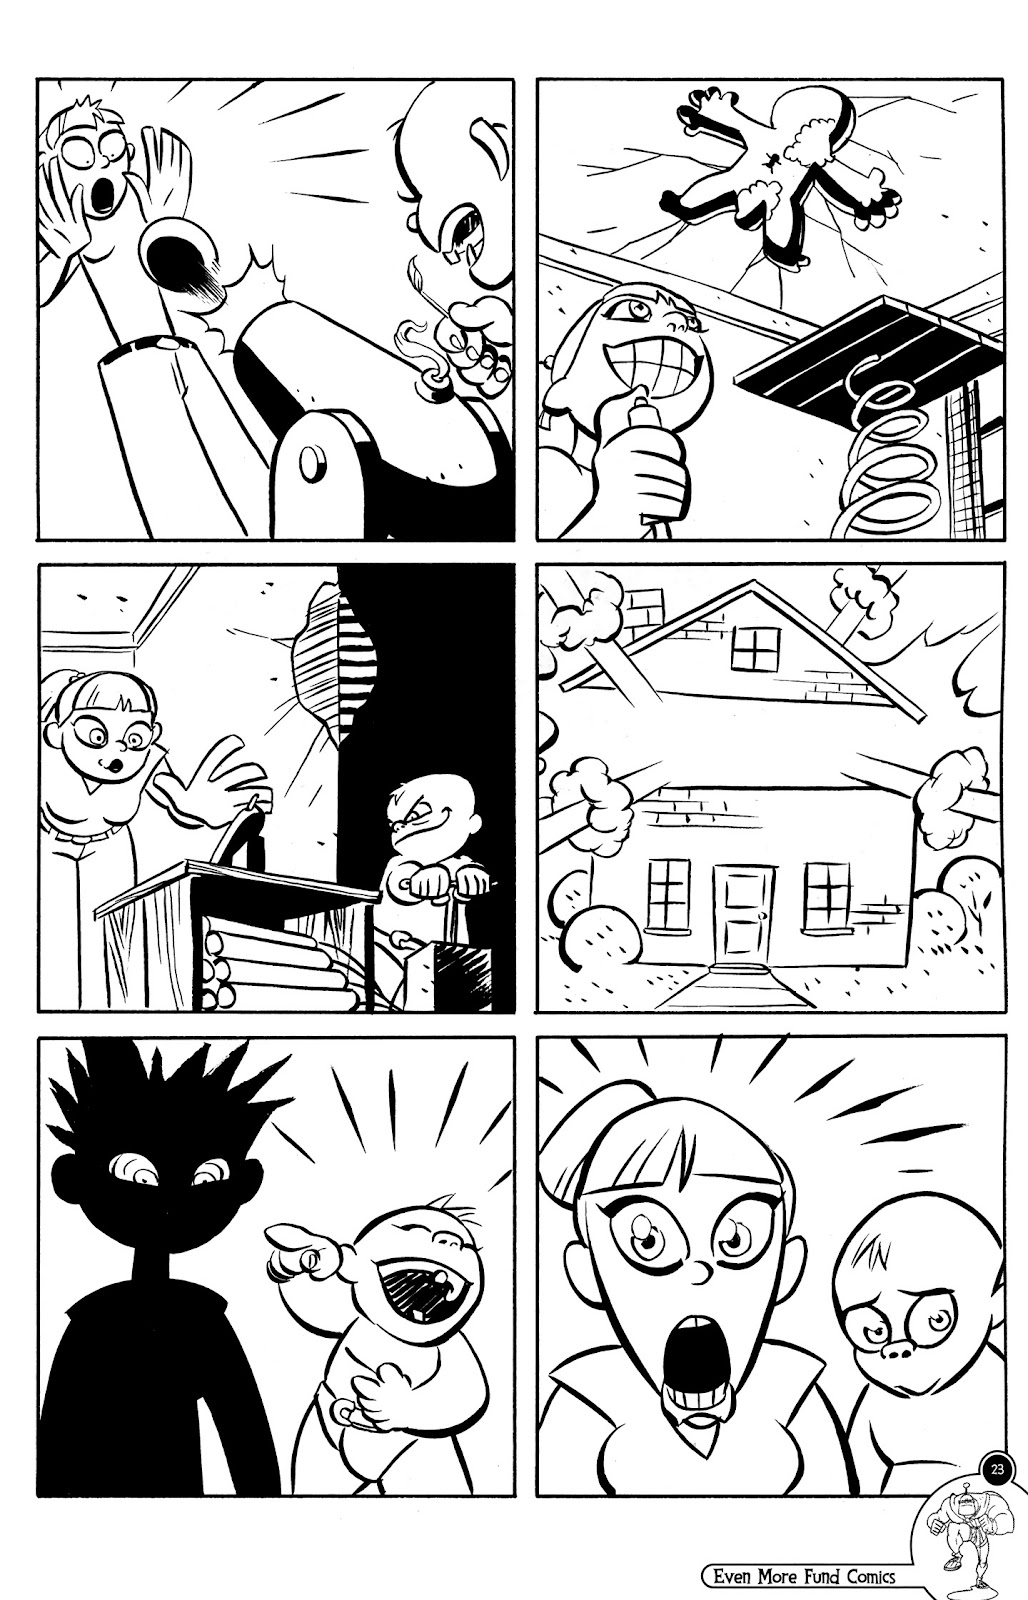 Read online Even More Fund Comics comic -  Issue # TPB (Part 1) - 23